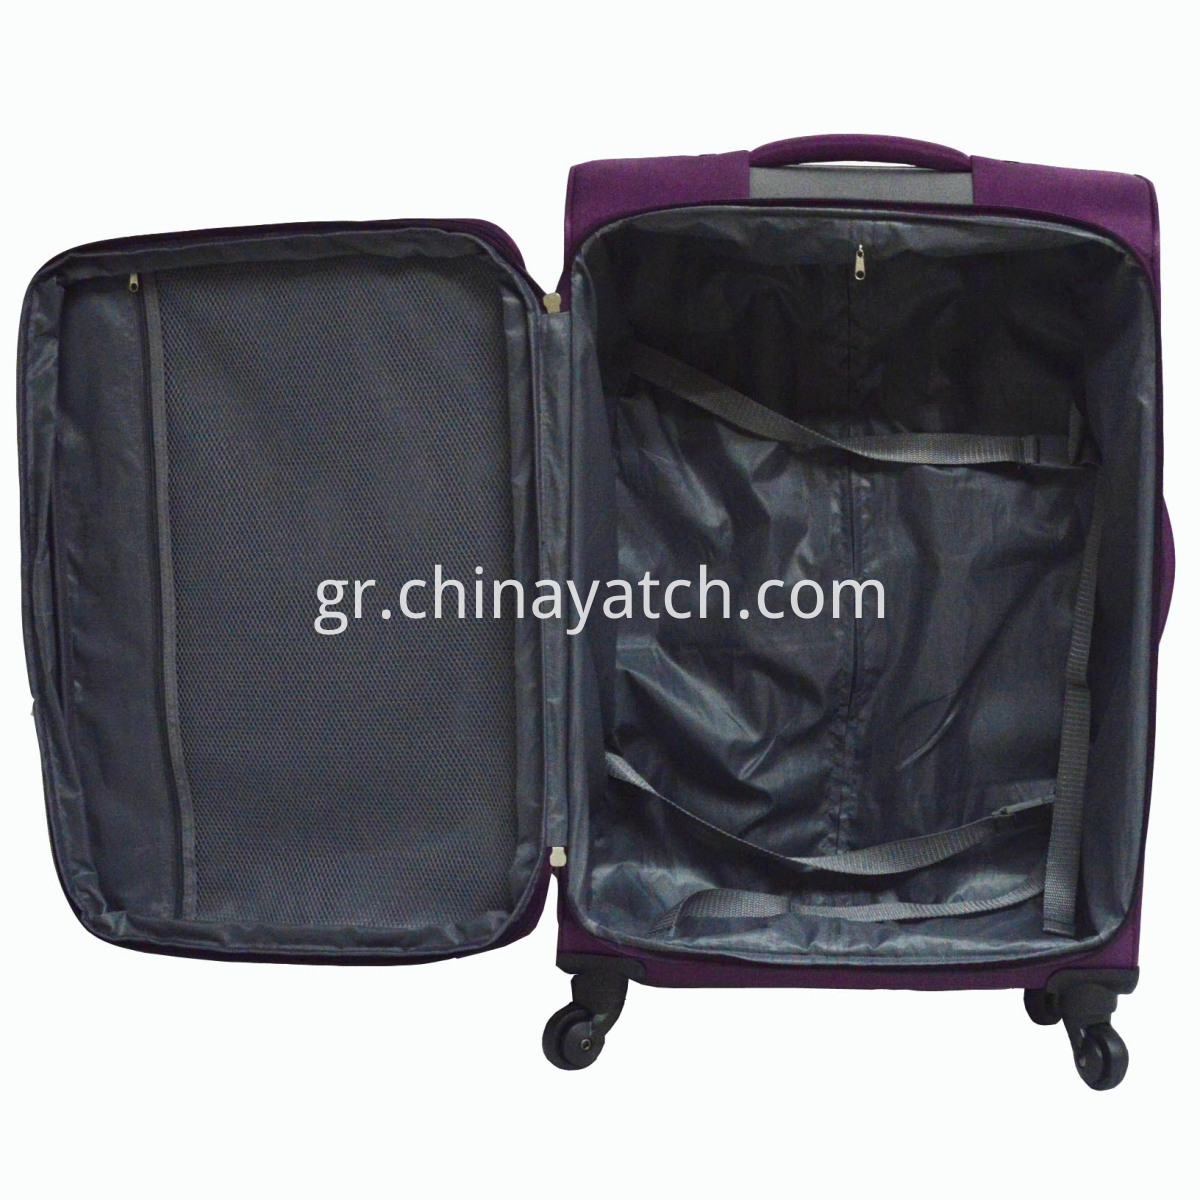 Suitcase sets with competitive price